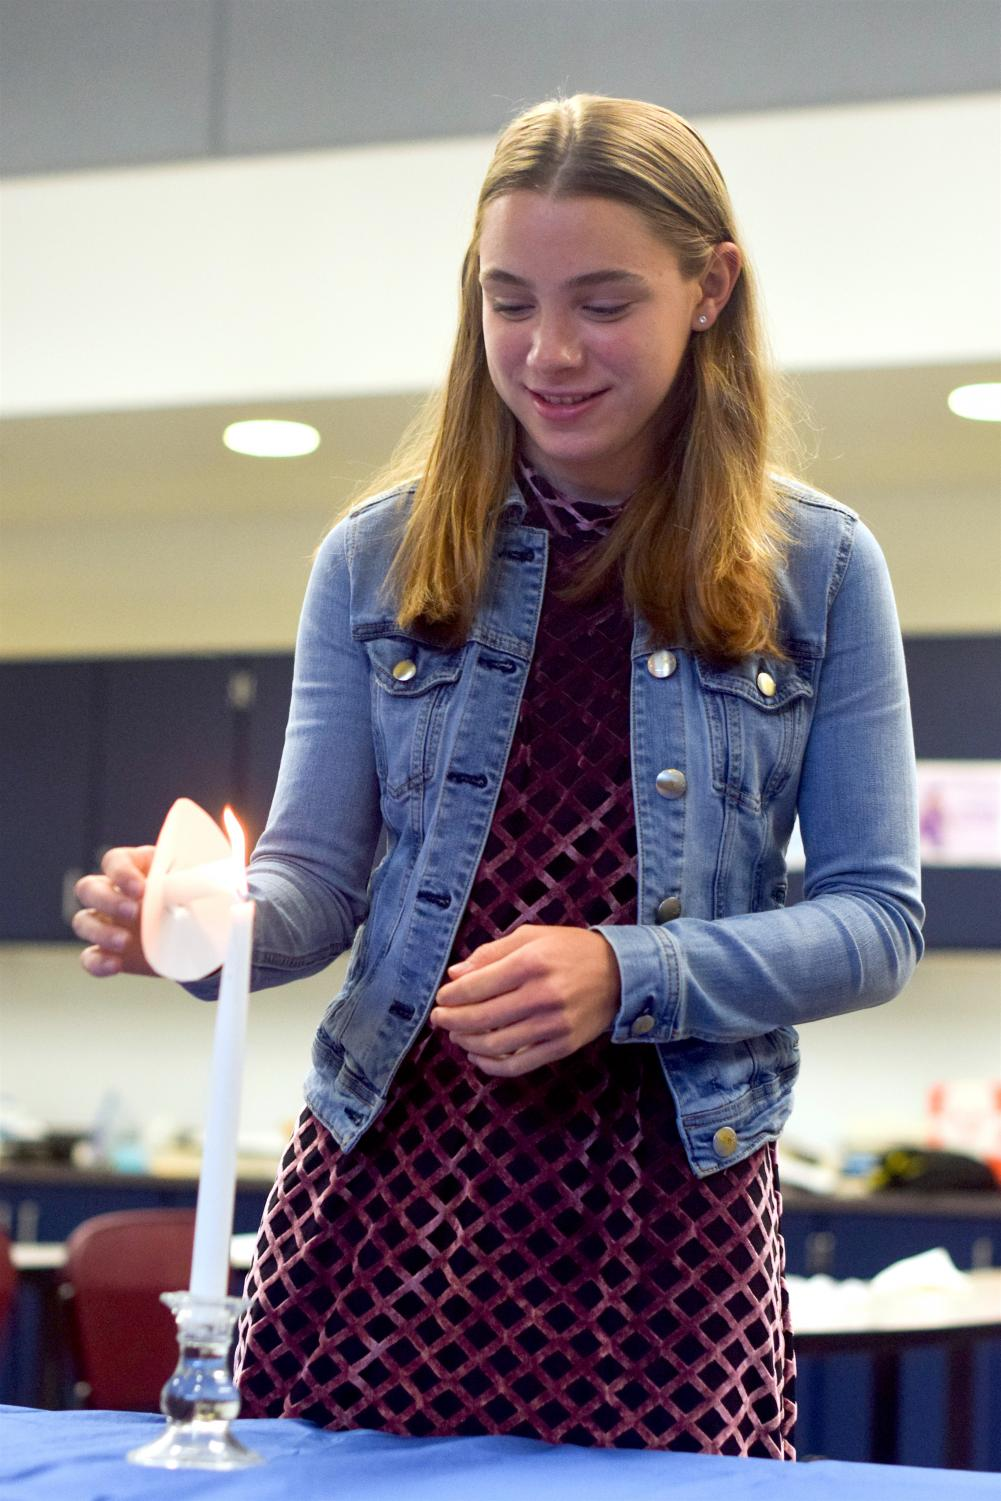 Senior Erica Sammarco of Colts Neck lights her candle using the 'candle of truth'.